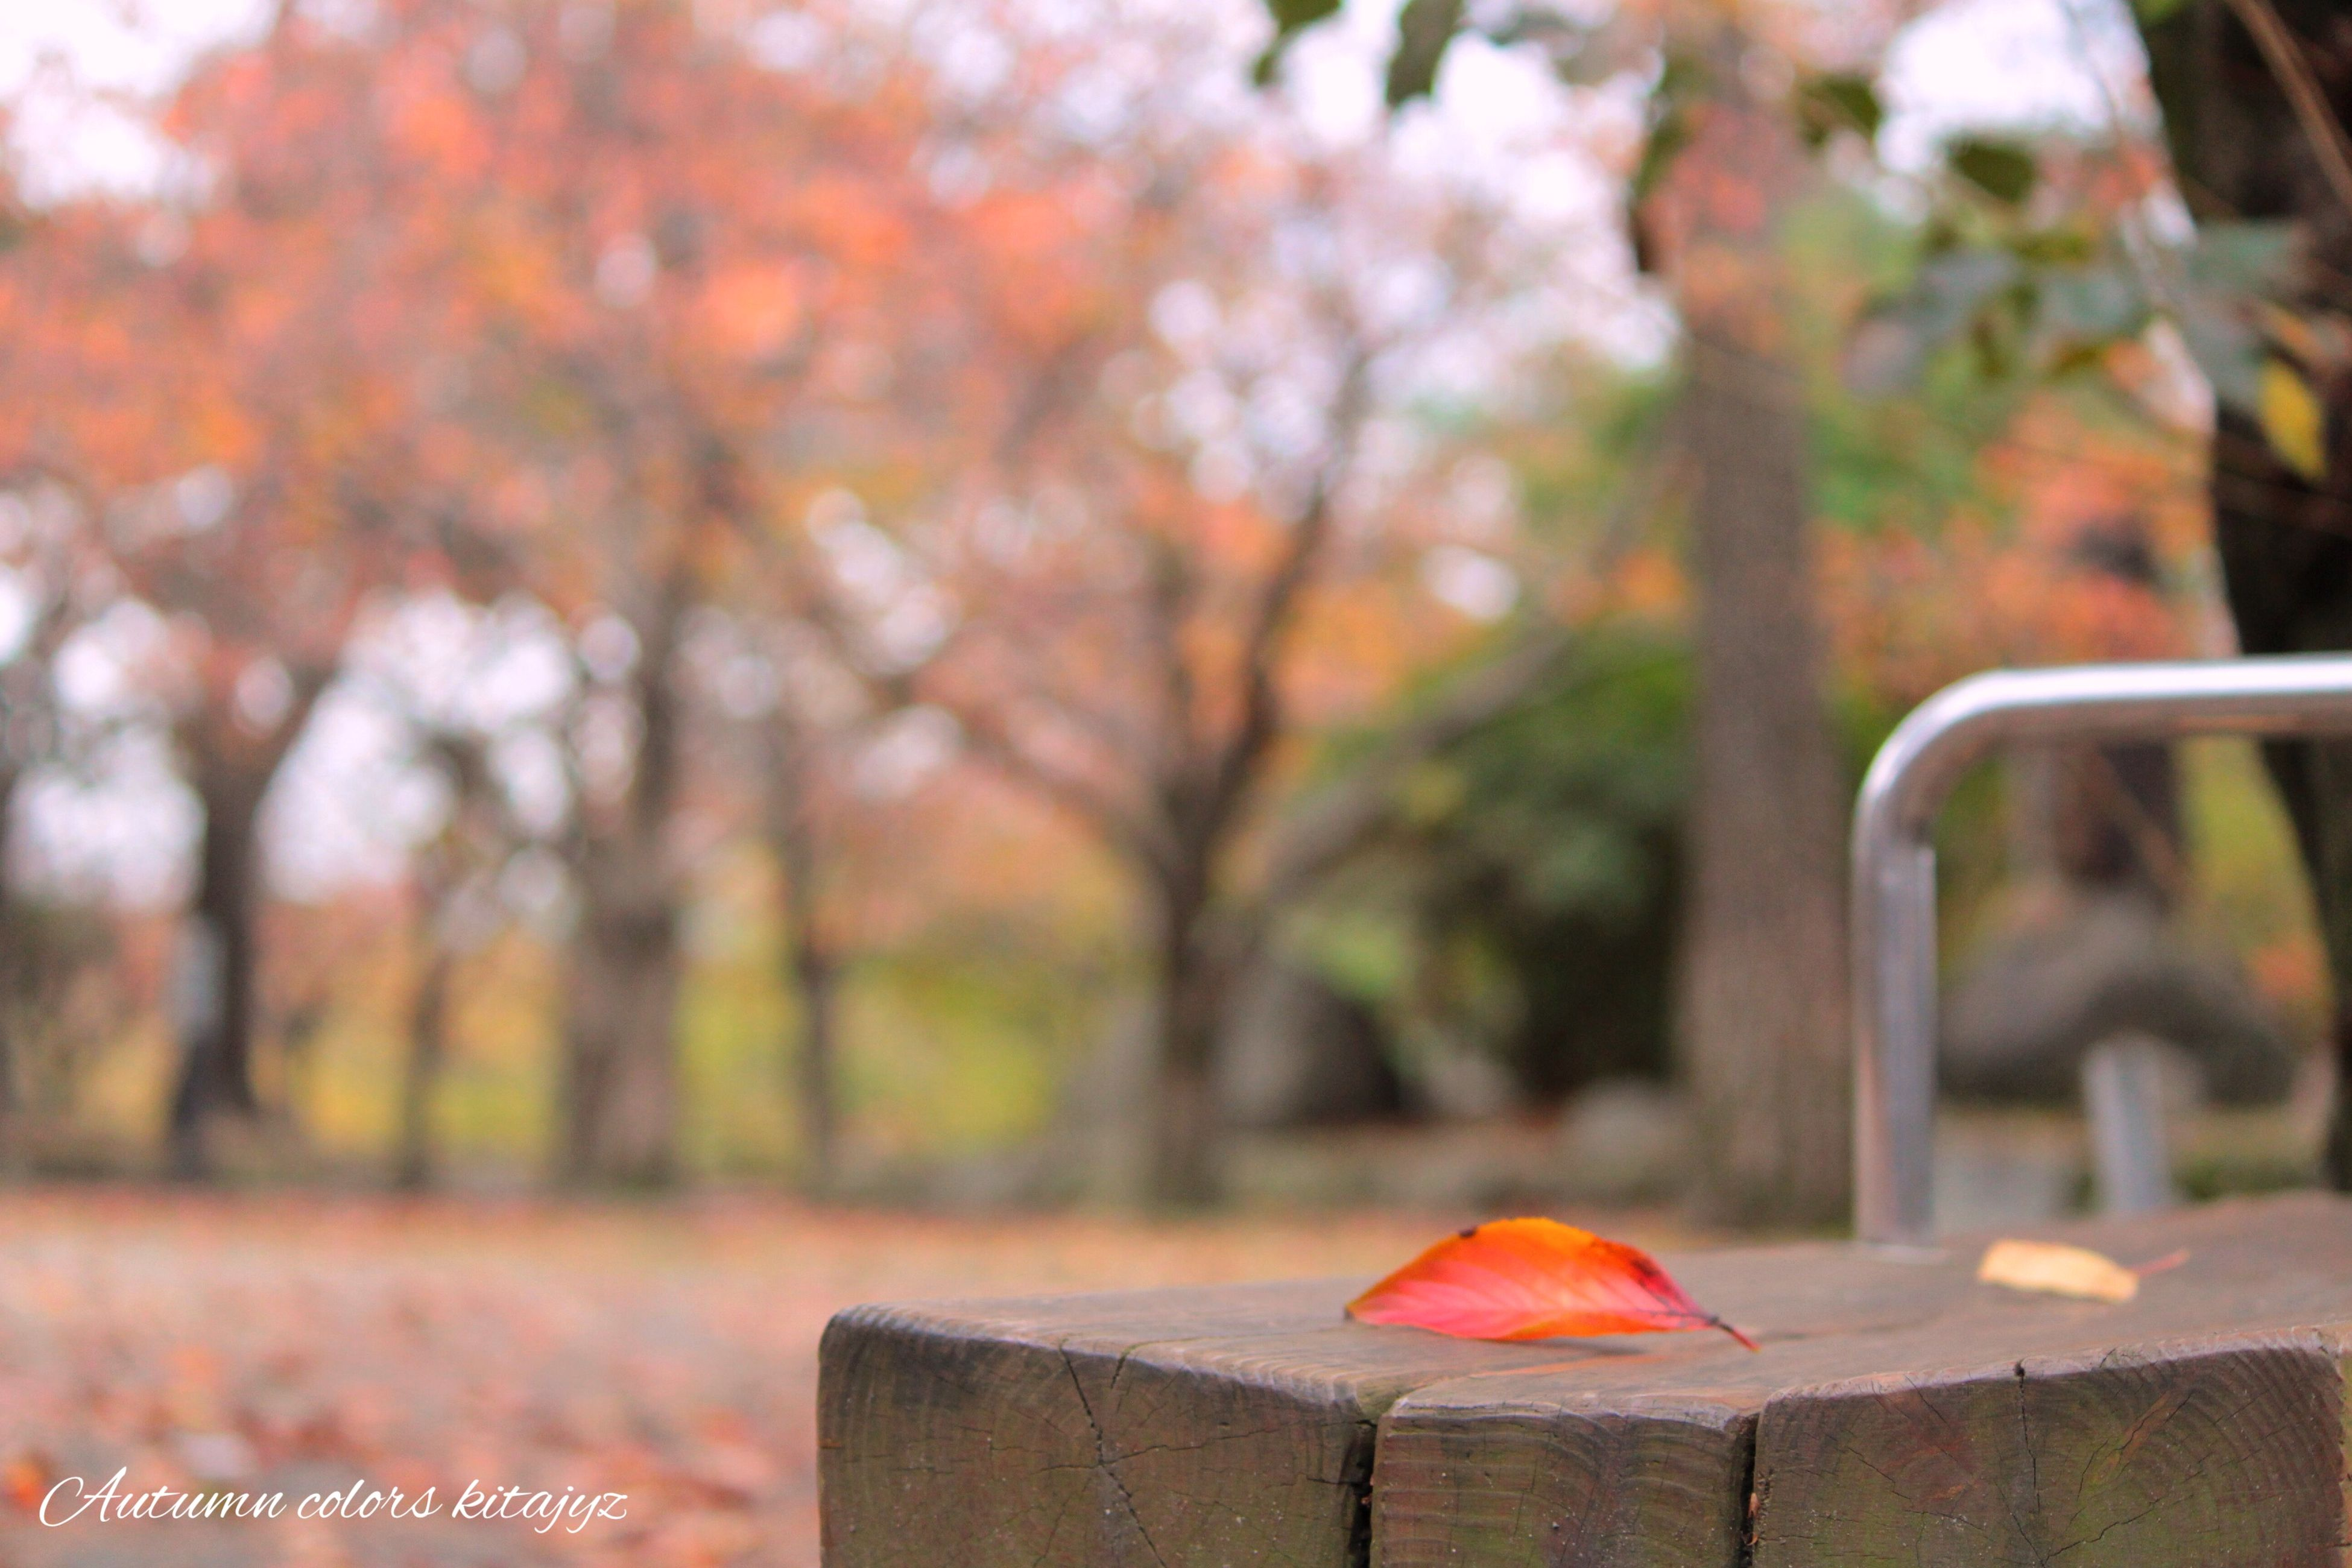 focus on foreground, tree, close-up, autumn, day, outdoors, nature, park - man made space, season, selective focus, no people, religion, red, leaf, change, front or back yard, bench, metal, growth, spirituality